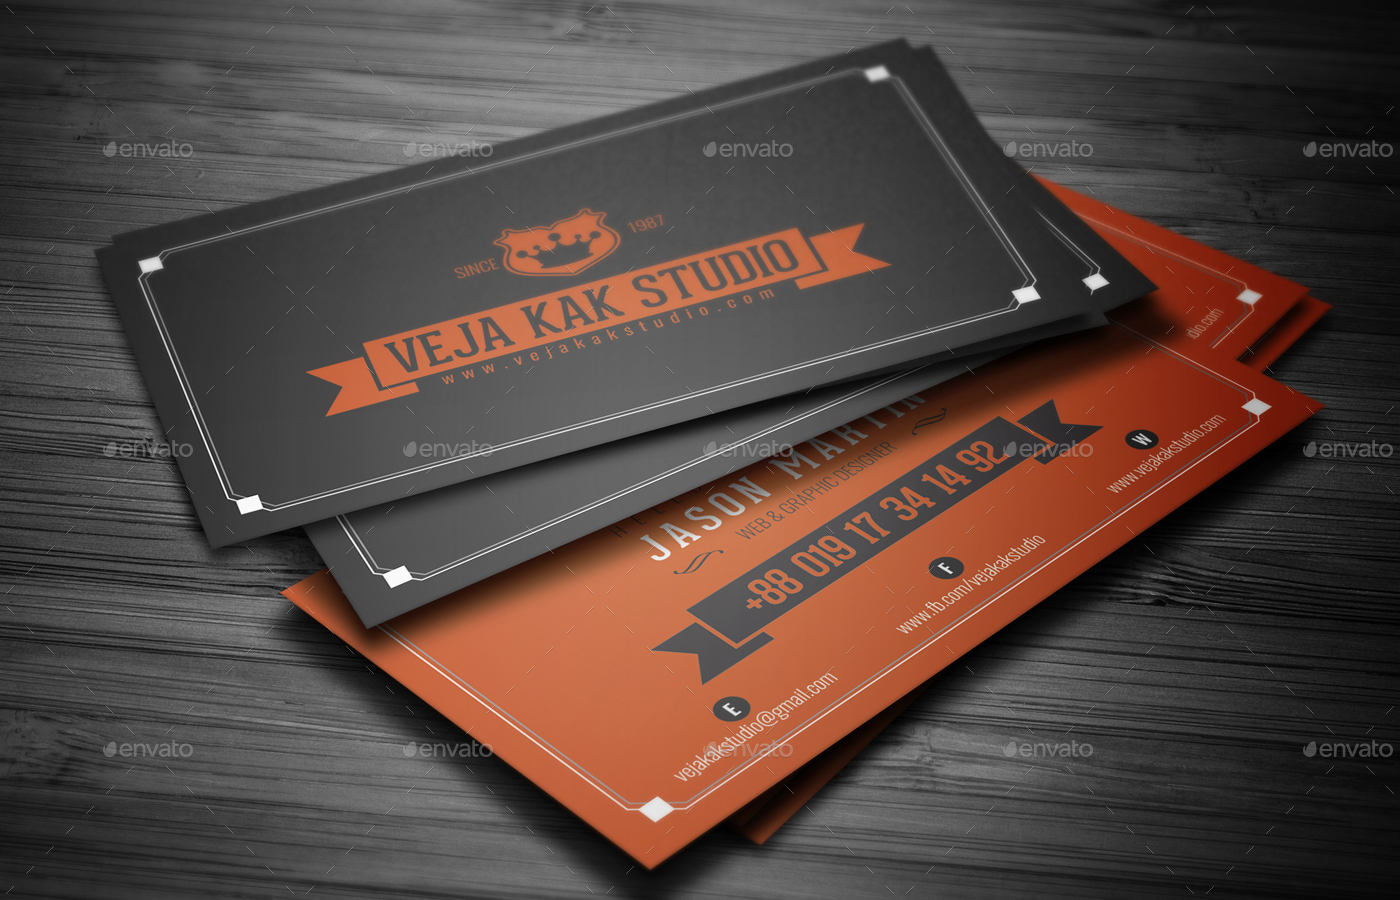 Vintage business card by vejakakstudio graphicriver retrovintage business cards preview01g preview02g preview03g reheart Gallery